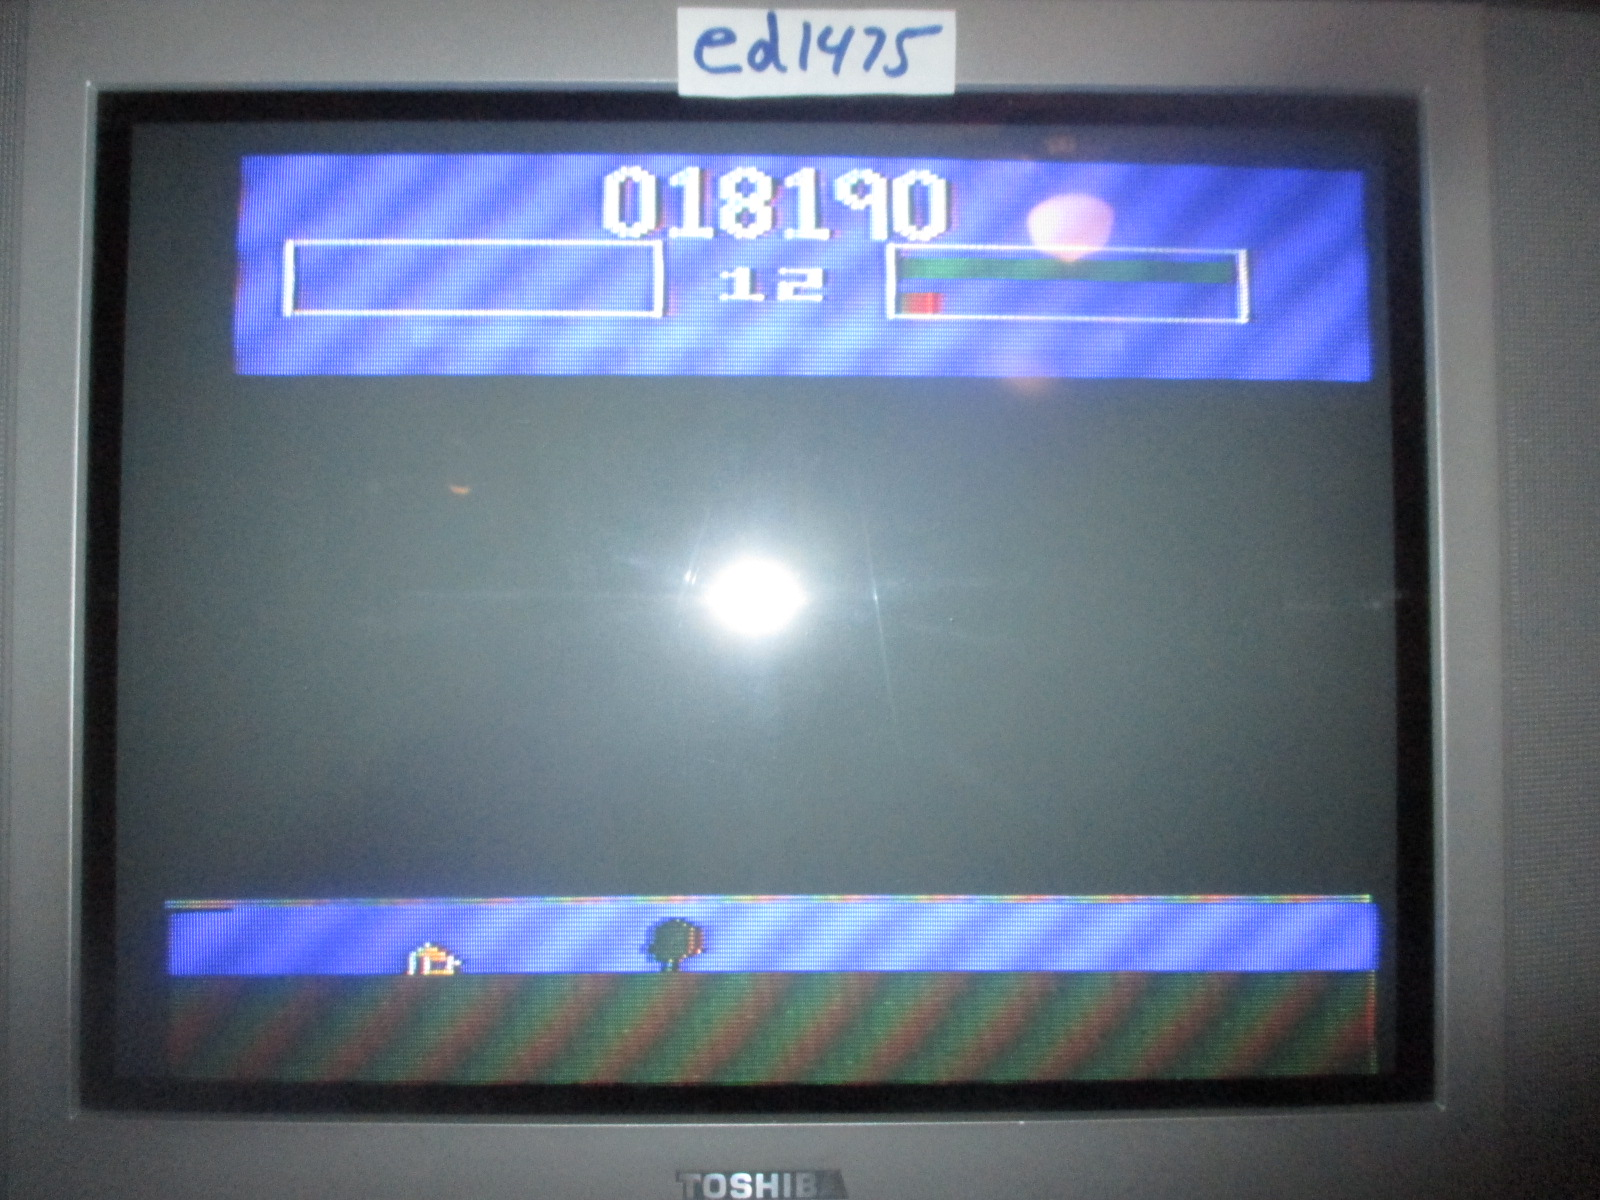 ed1475: Killer Satellites (Atari 2600 Novice/B) 18,190 points on 2014-11-24 19:35:42